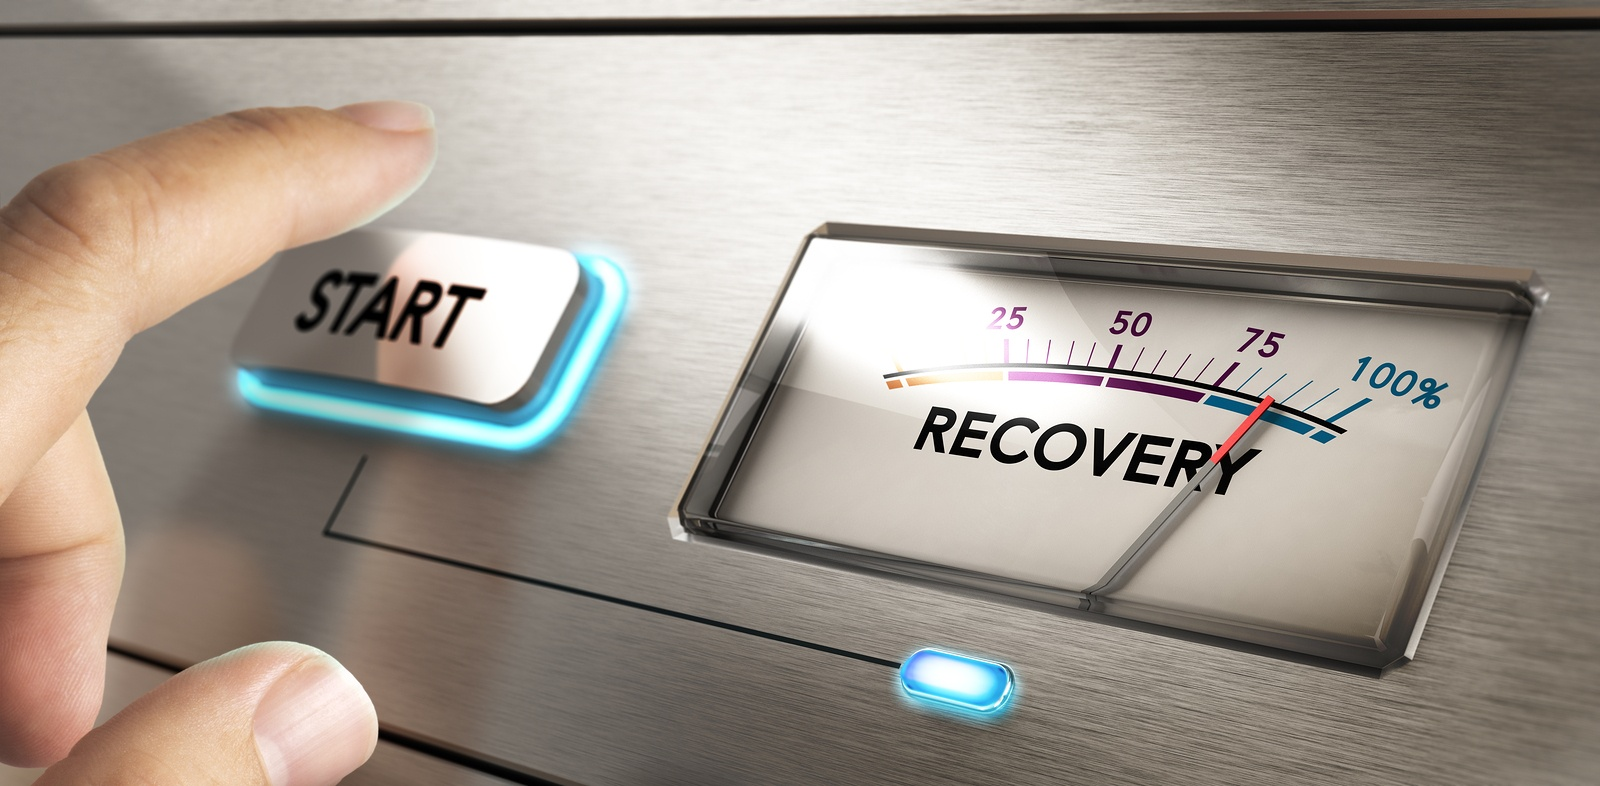 You already know two important keys to recovering from network downtime - RPO and RTO.